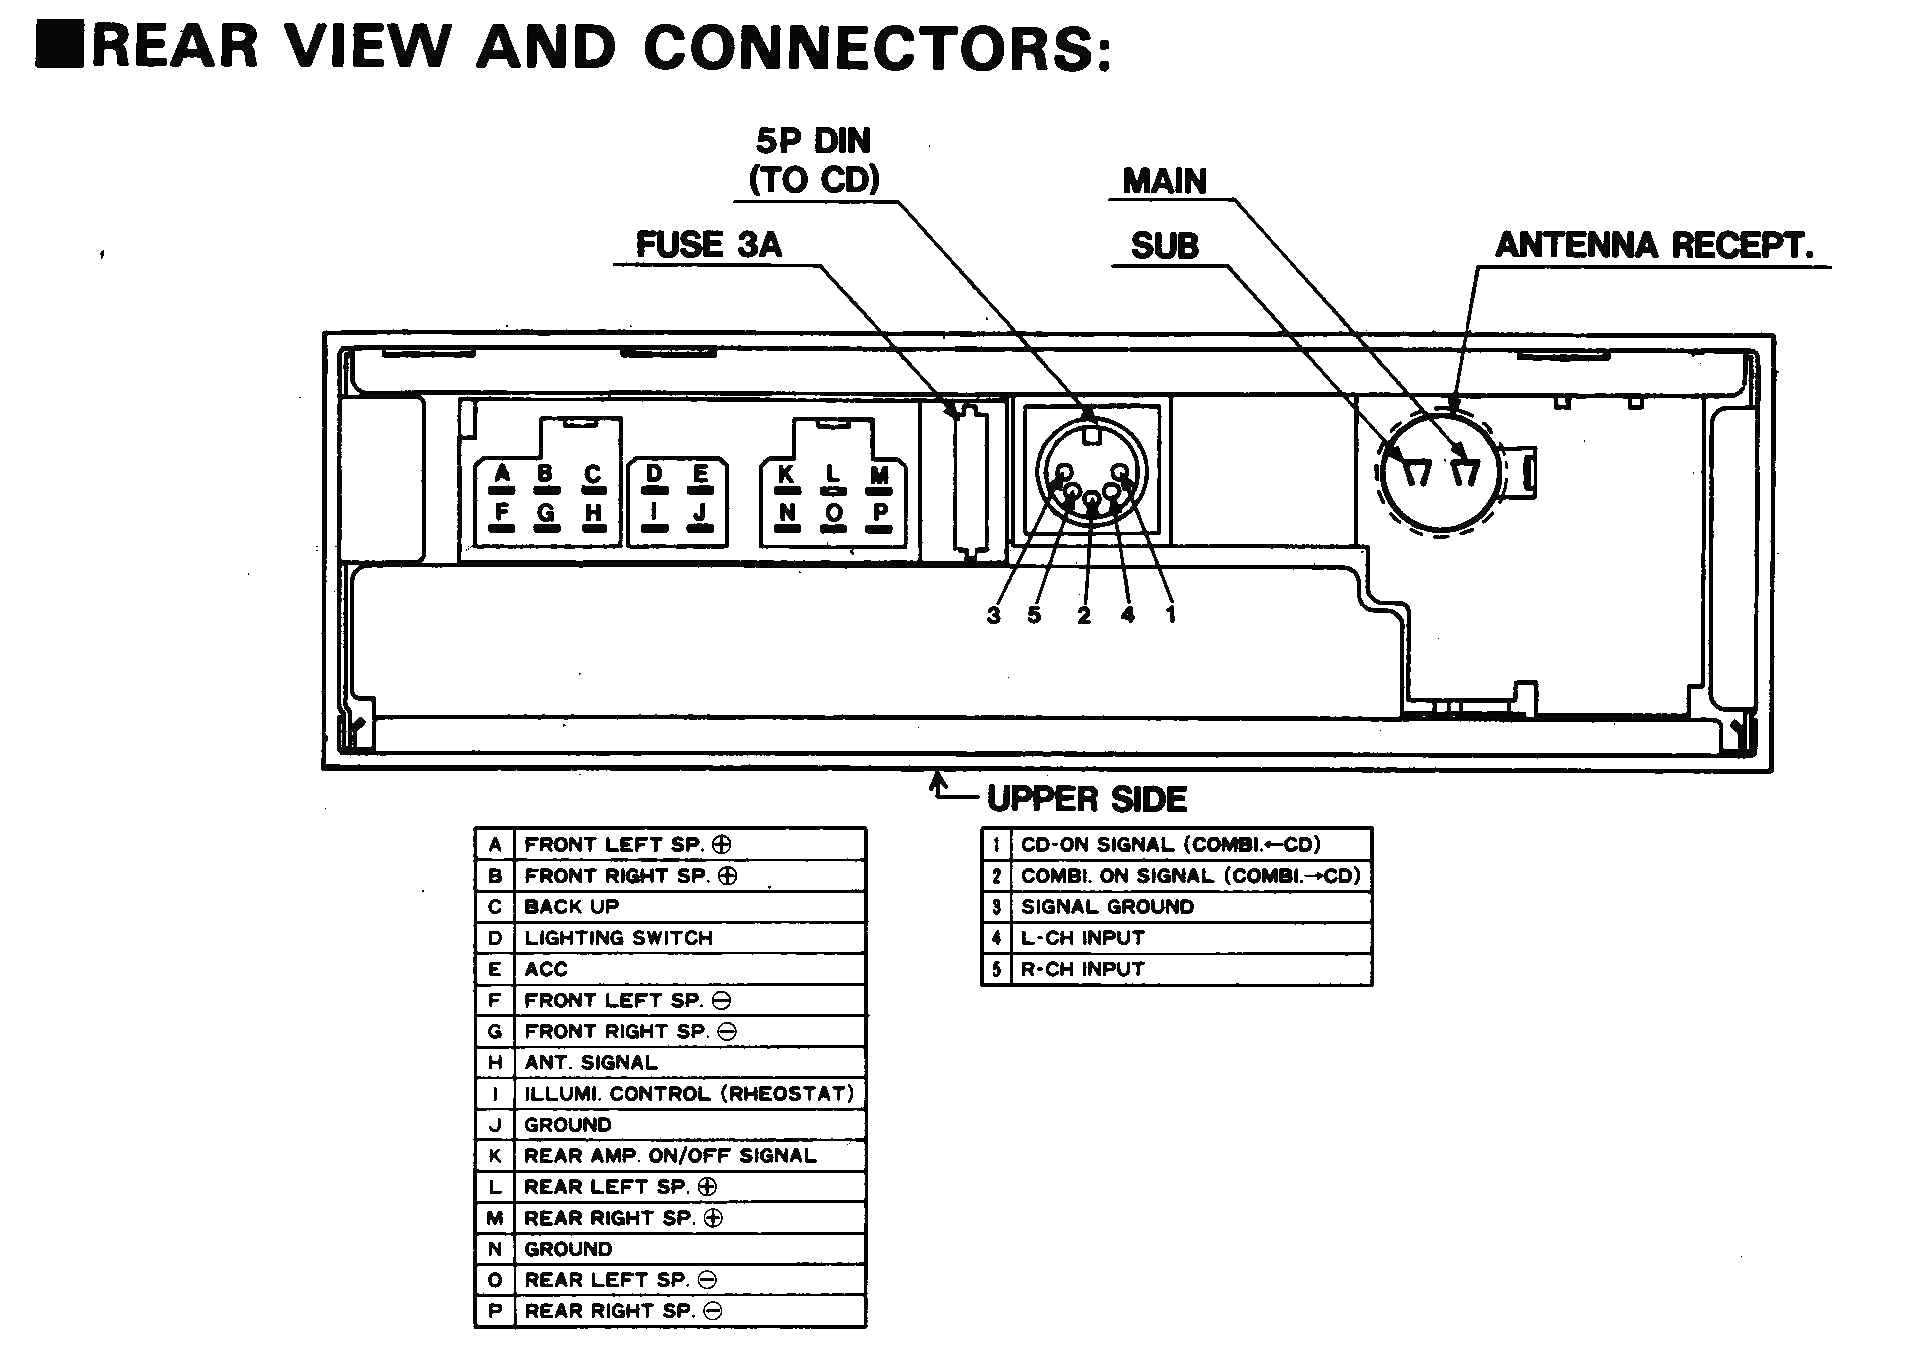 Home Audio Wiring Diagram Wiring Diagram for A Dual Car Stereo New ...